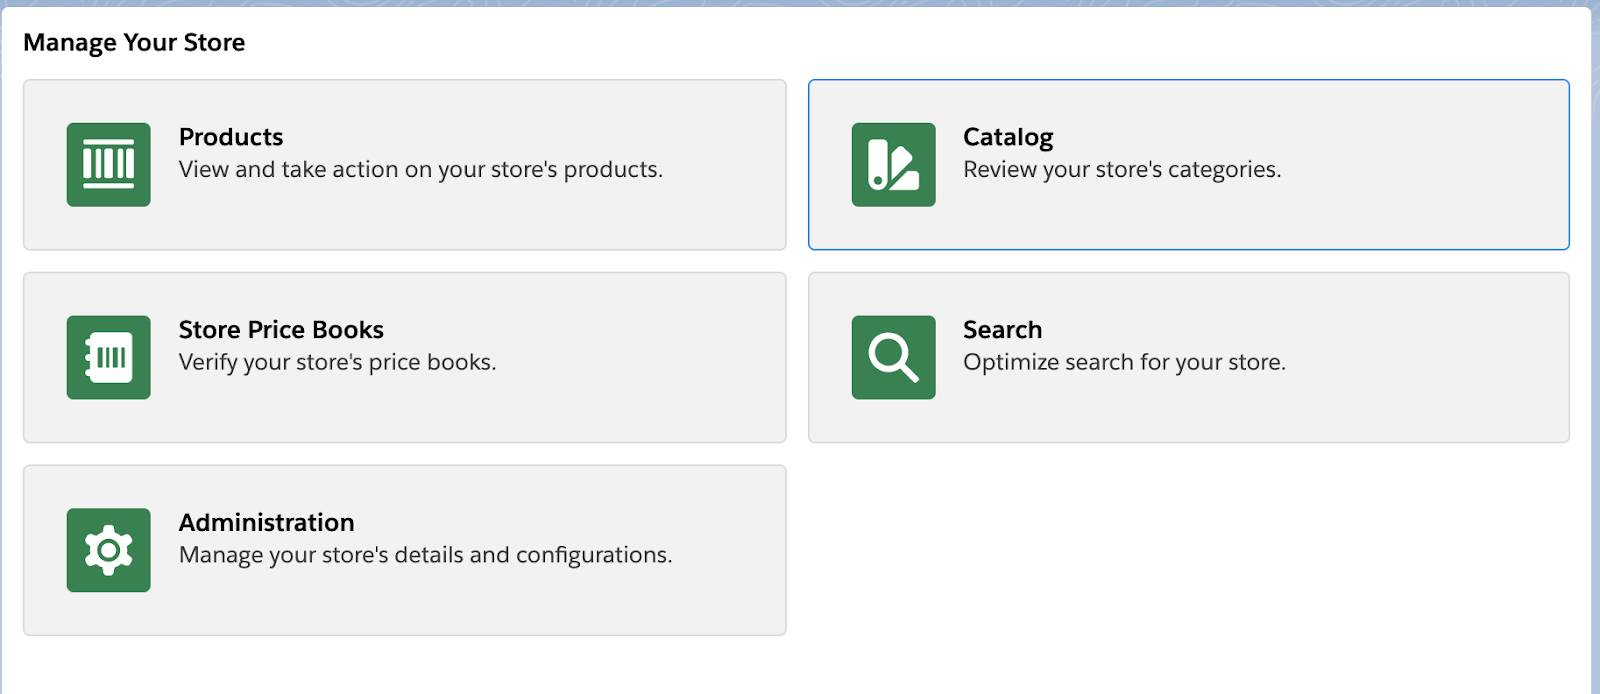 Commerce app quick links to Products, Store Price Books, Administration, Catalog and Search.